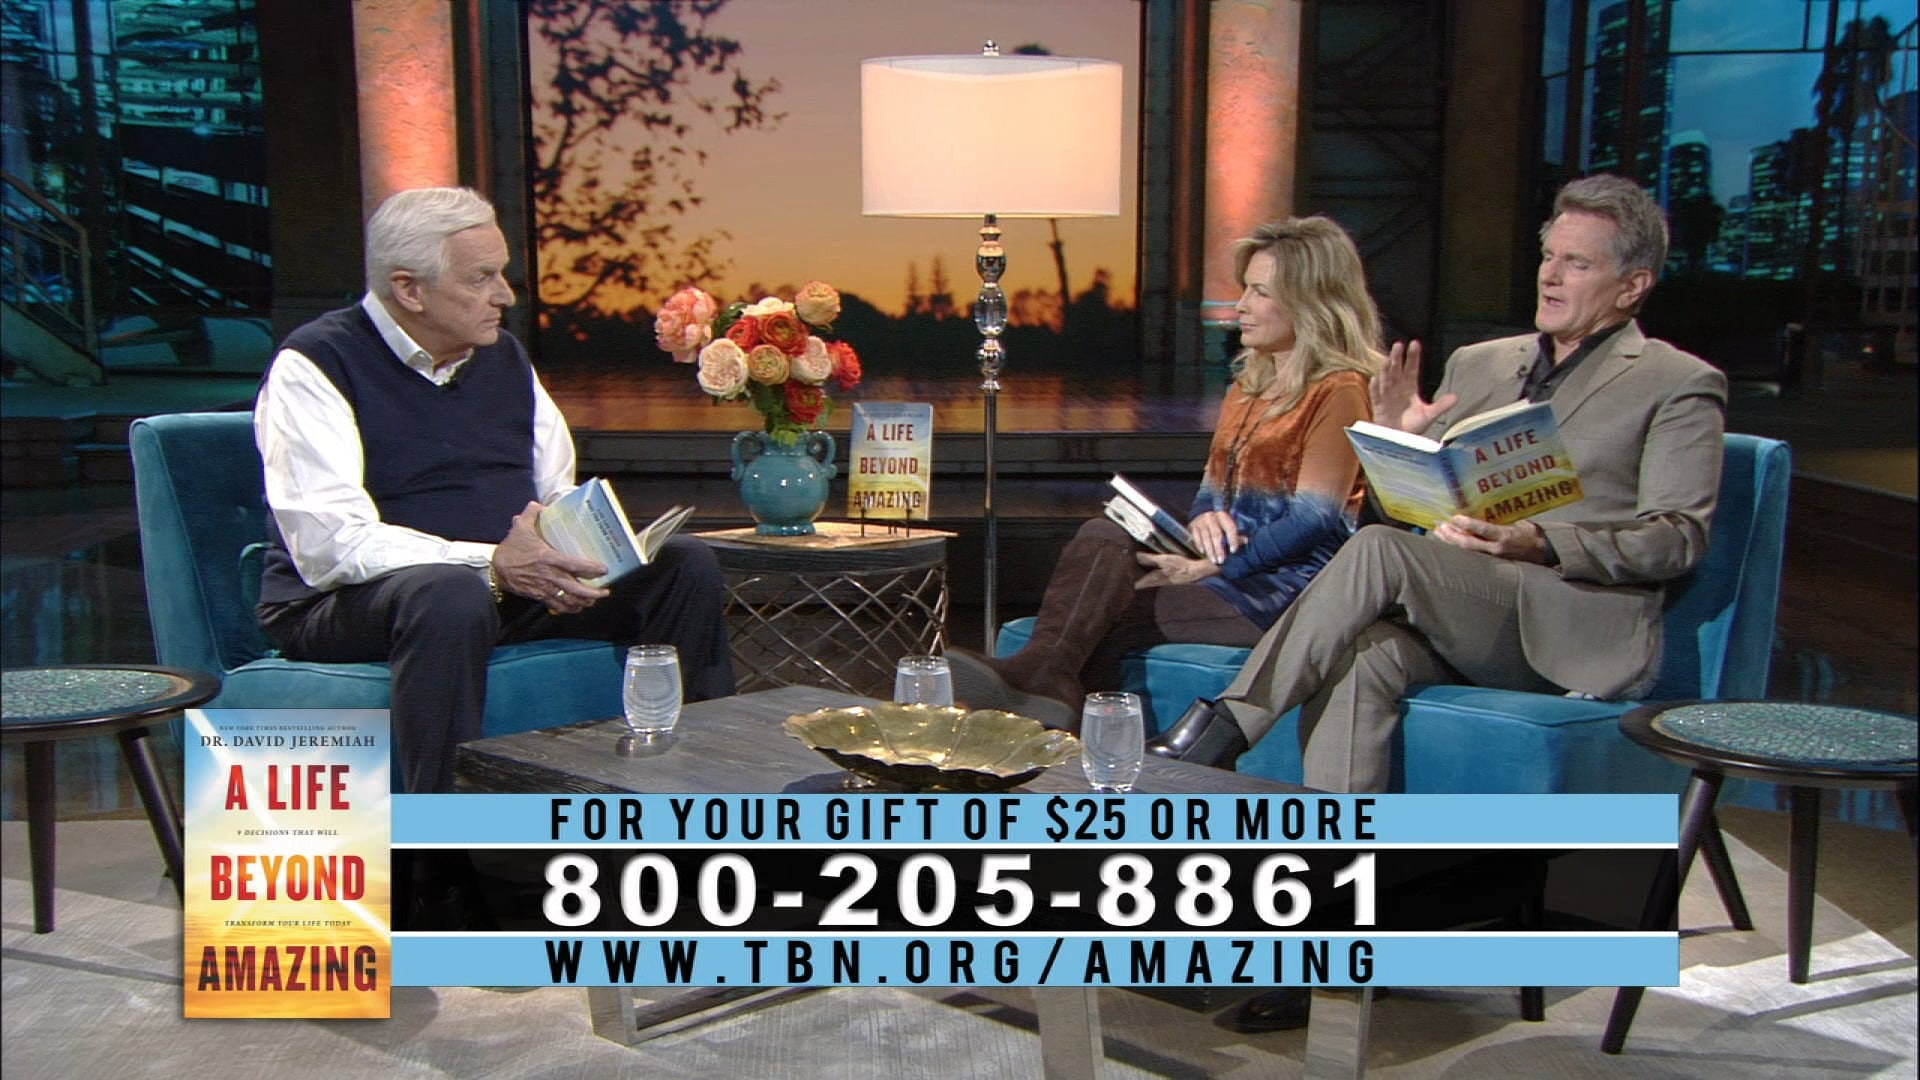 Watch David Jeremiah reveals God's divine strategy for transformation, quality livi...